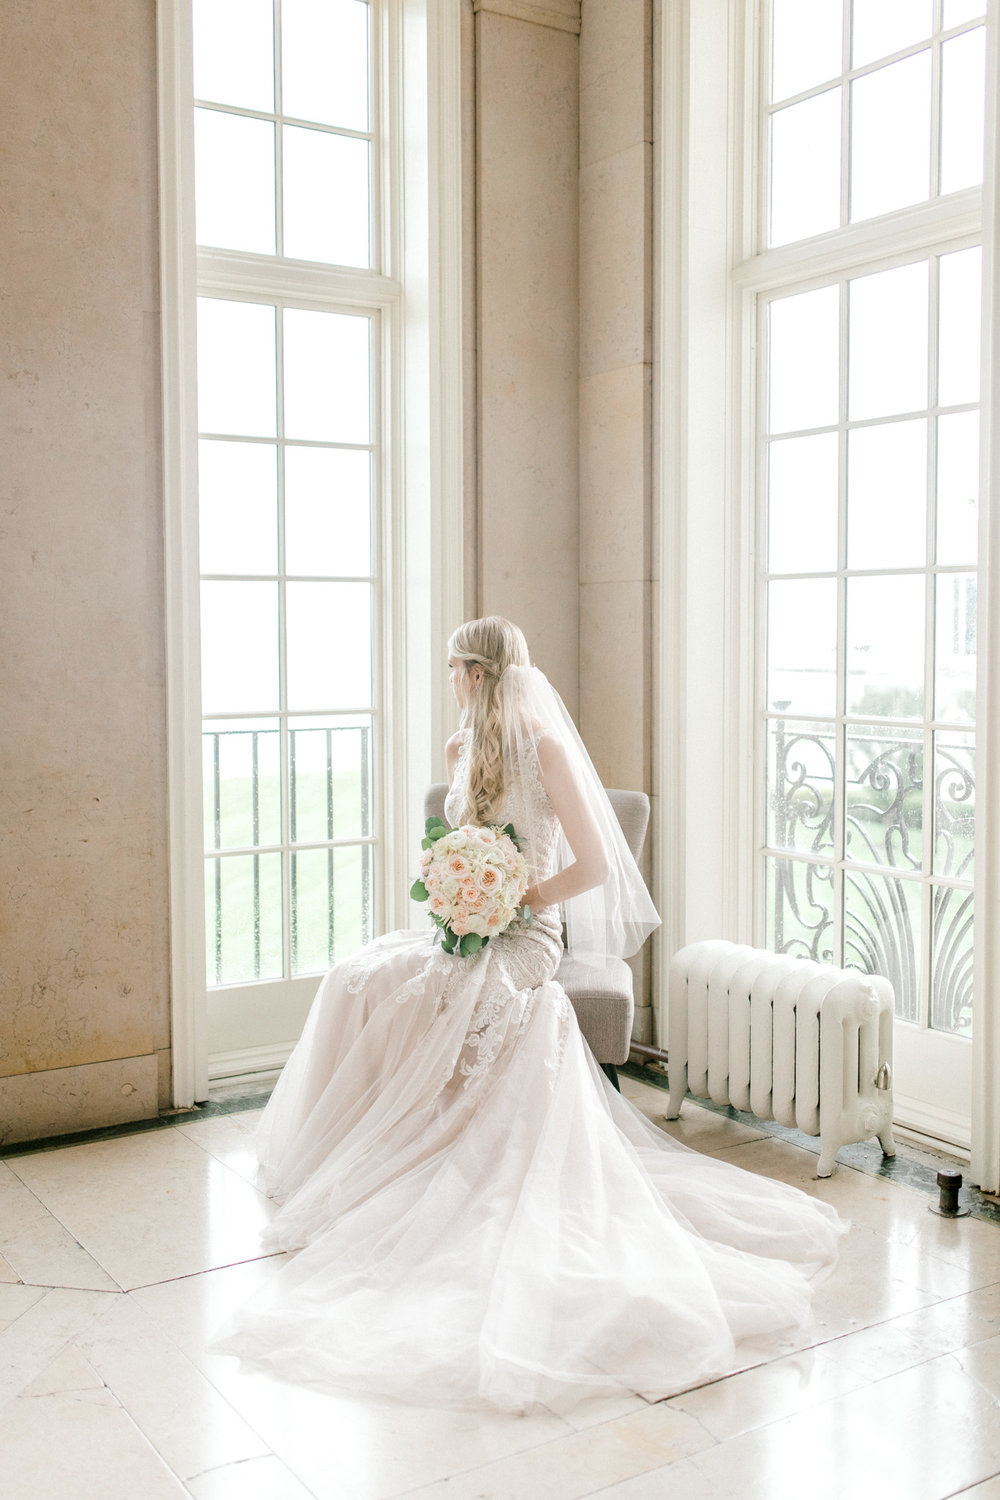 Elegant, Trendy Wedding in Detroit Michigan | Lace Wedding Gown and Royale Blue Tux | Floral Tie | Light & Airy Michigan Wedding Photographer